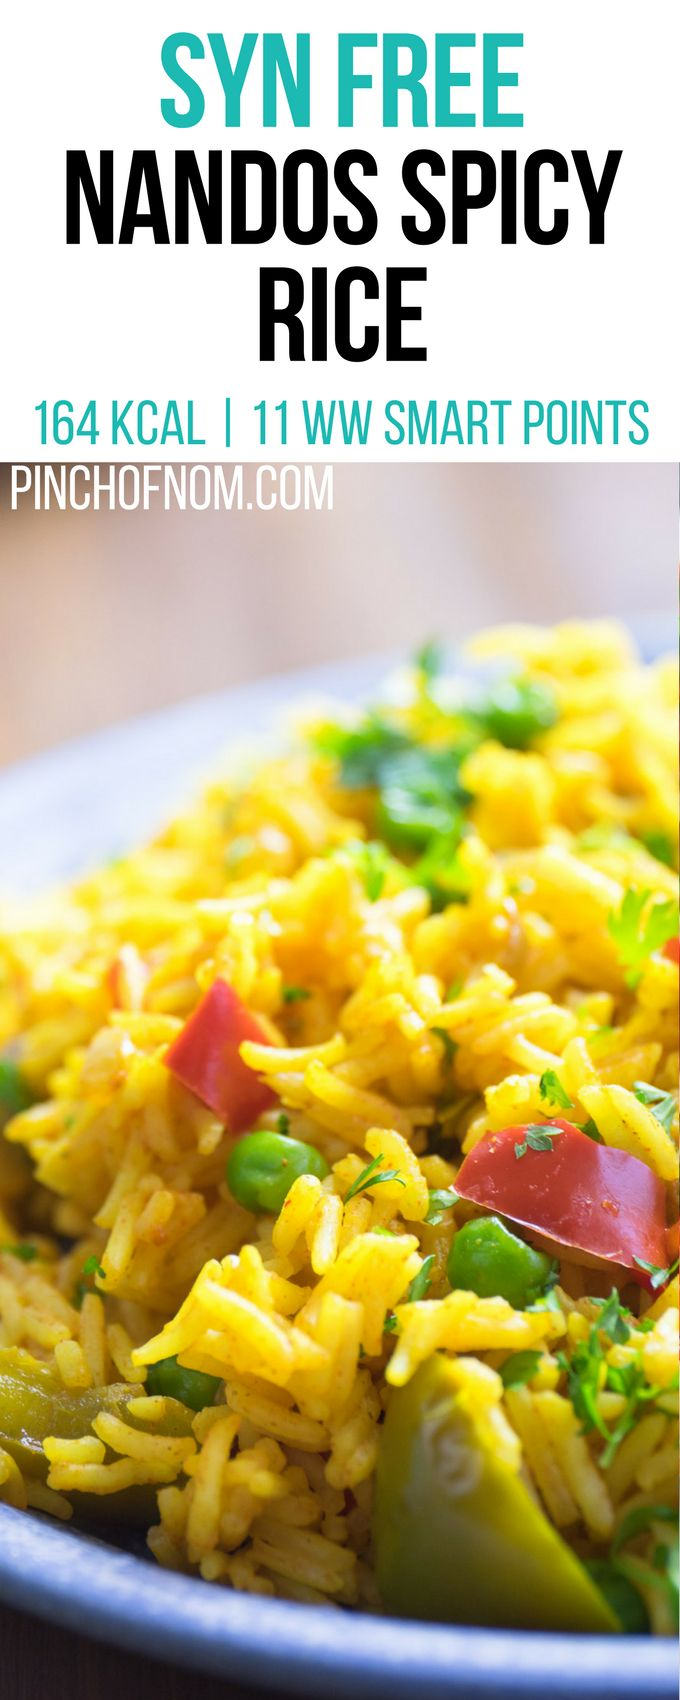 Syn Free Nando's Spicy Rice | Pinch Of Nom Slimming World Recipes     164 kcal | Syn Free | 11 Weight Watchers Smart Points